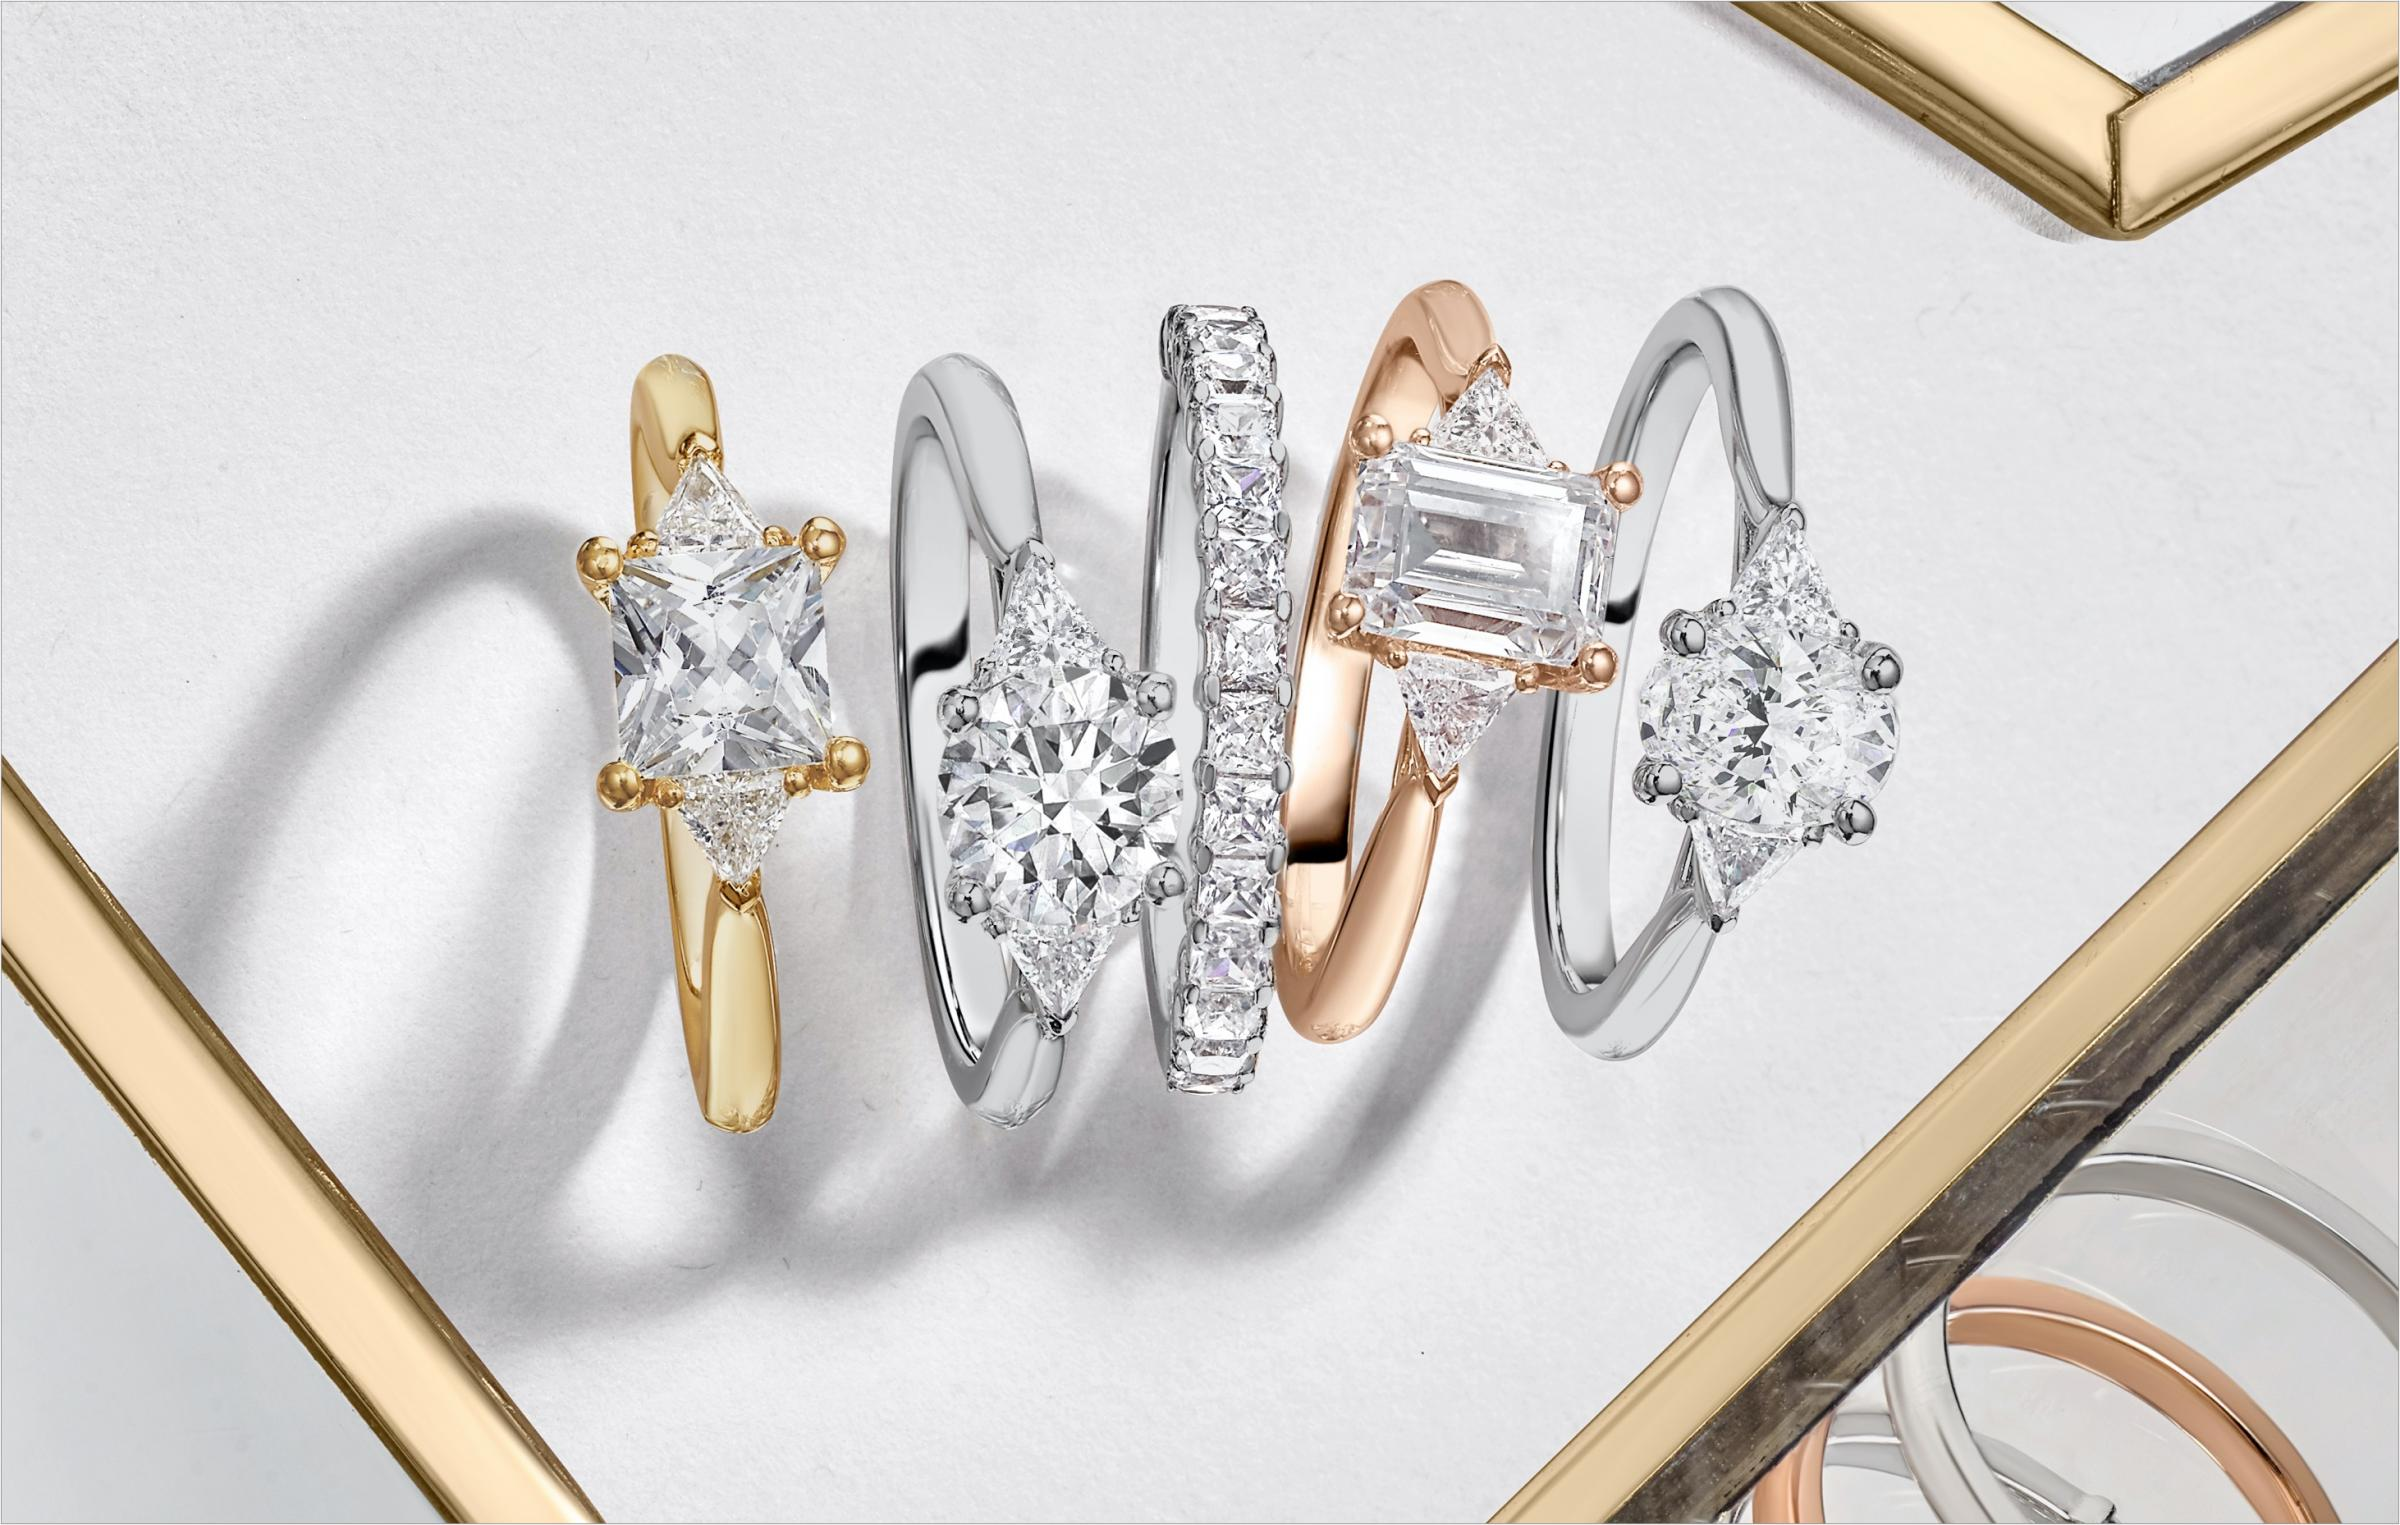 Win An Engagement Ring Worth 500 From 77diamond News And Star